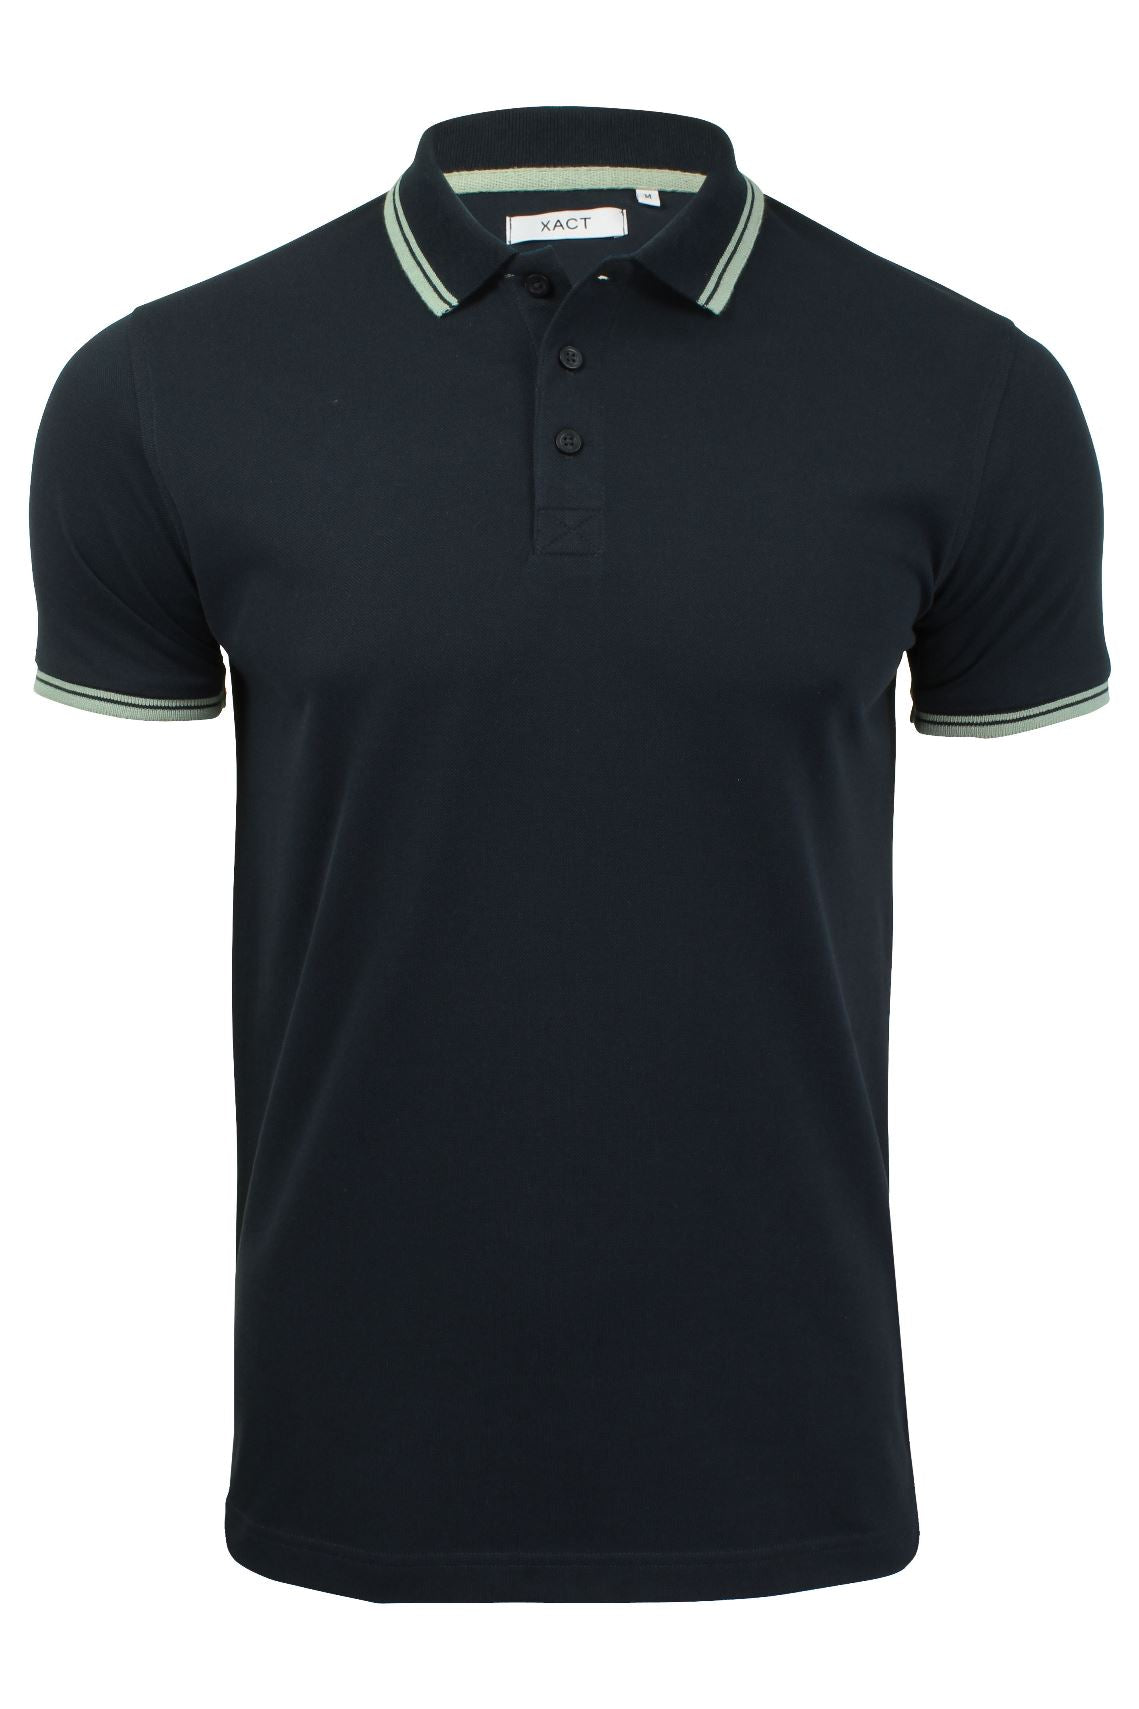 Xact Mens Hero Polo T-Shirt Short Sleeved Tipped collar Pique Fabric-2